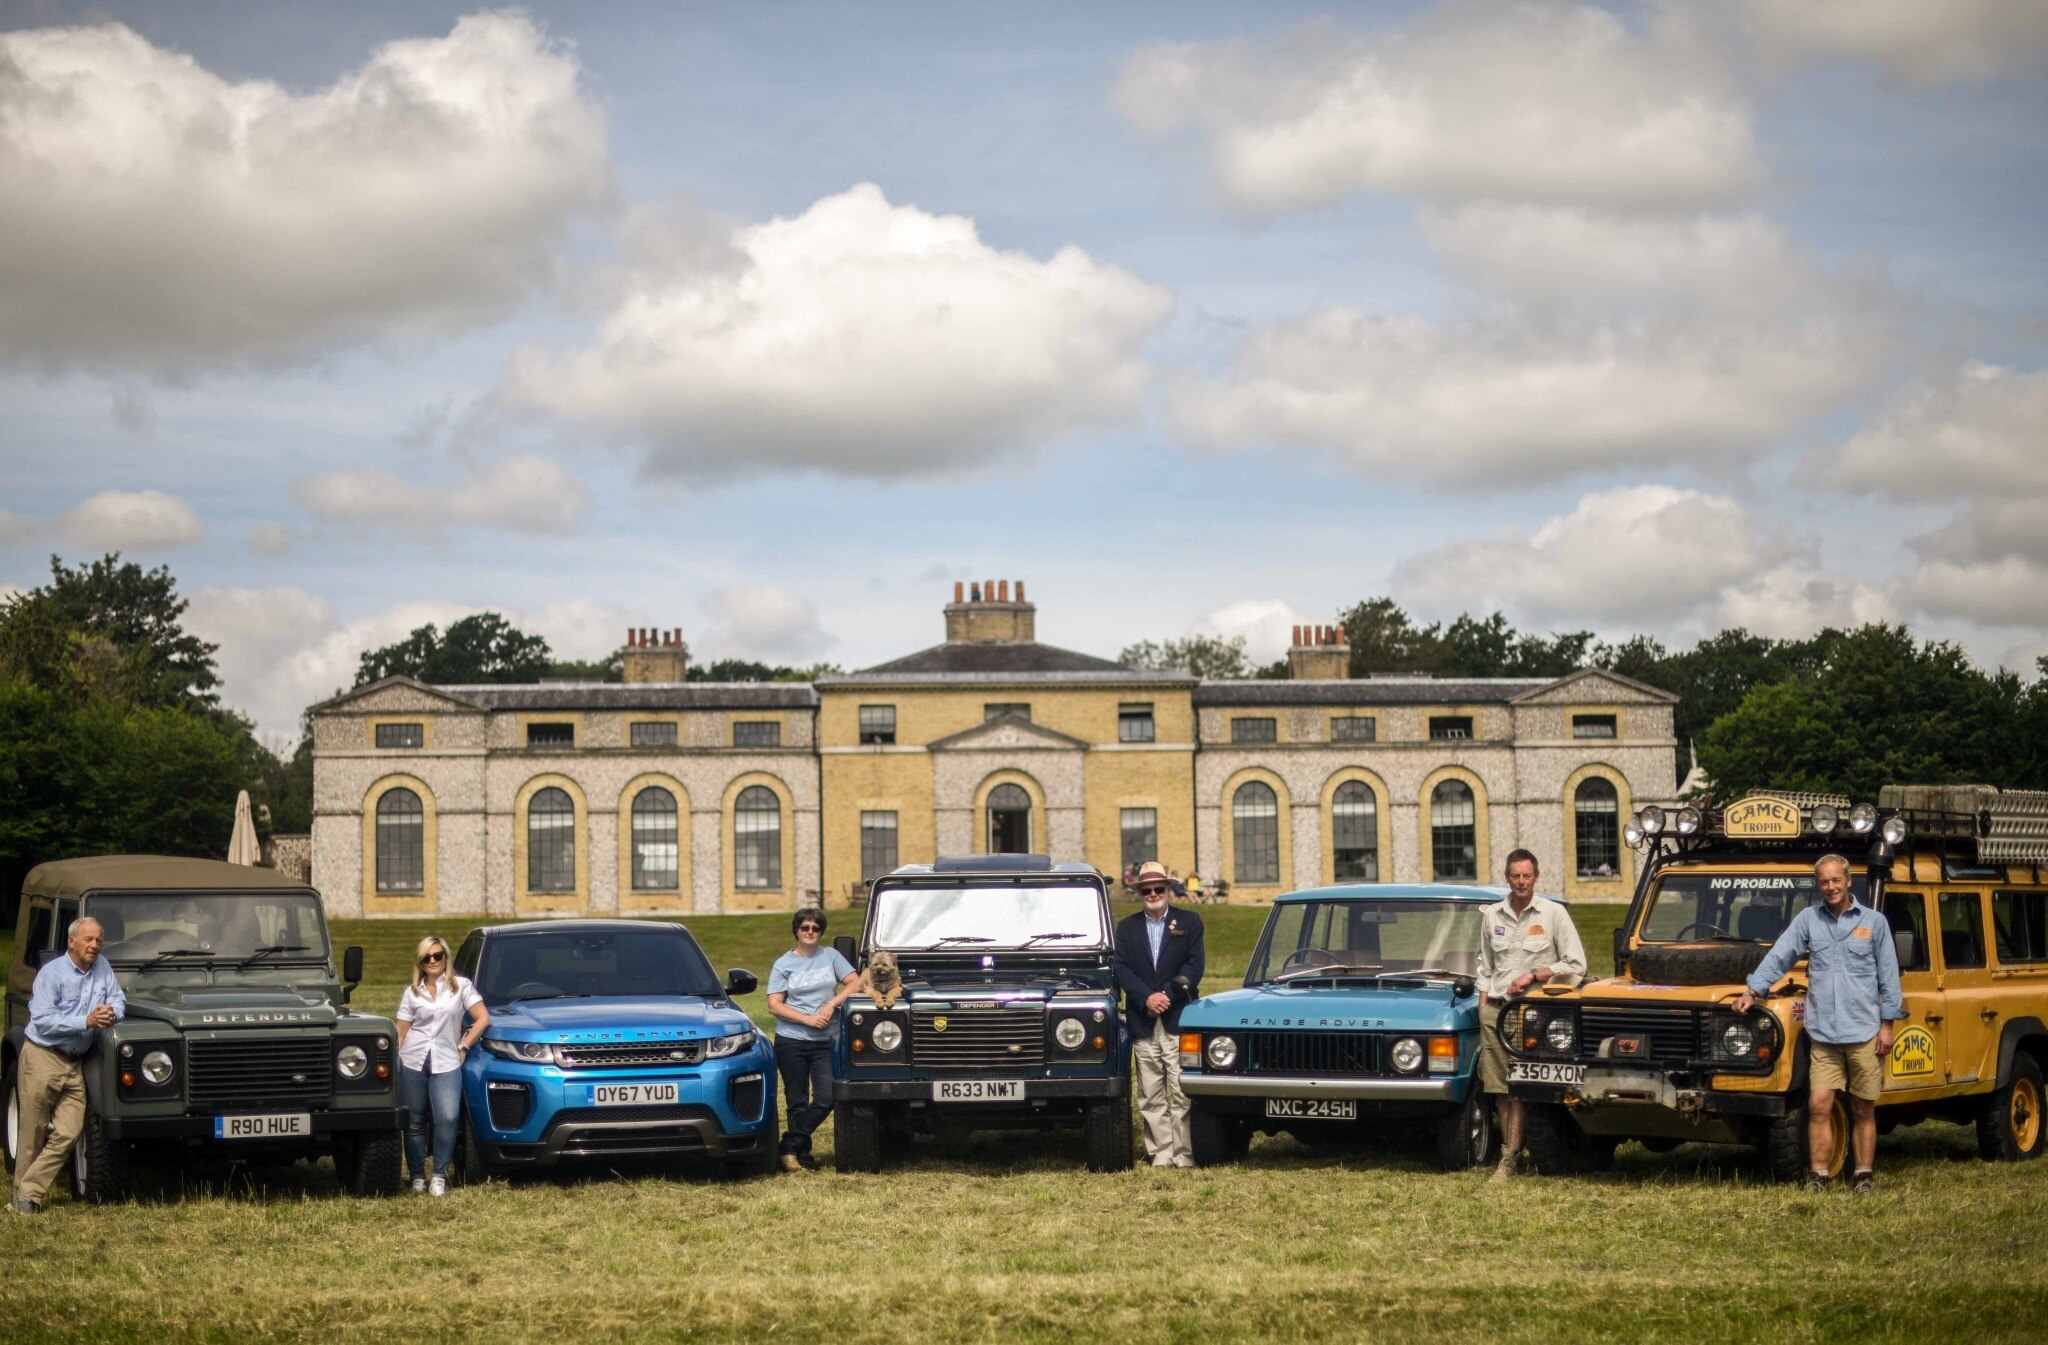 Land Rover Goodwood Festival Of Speed